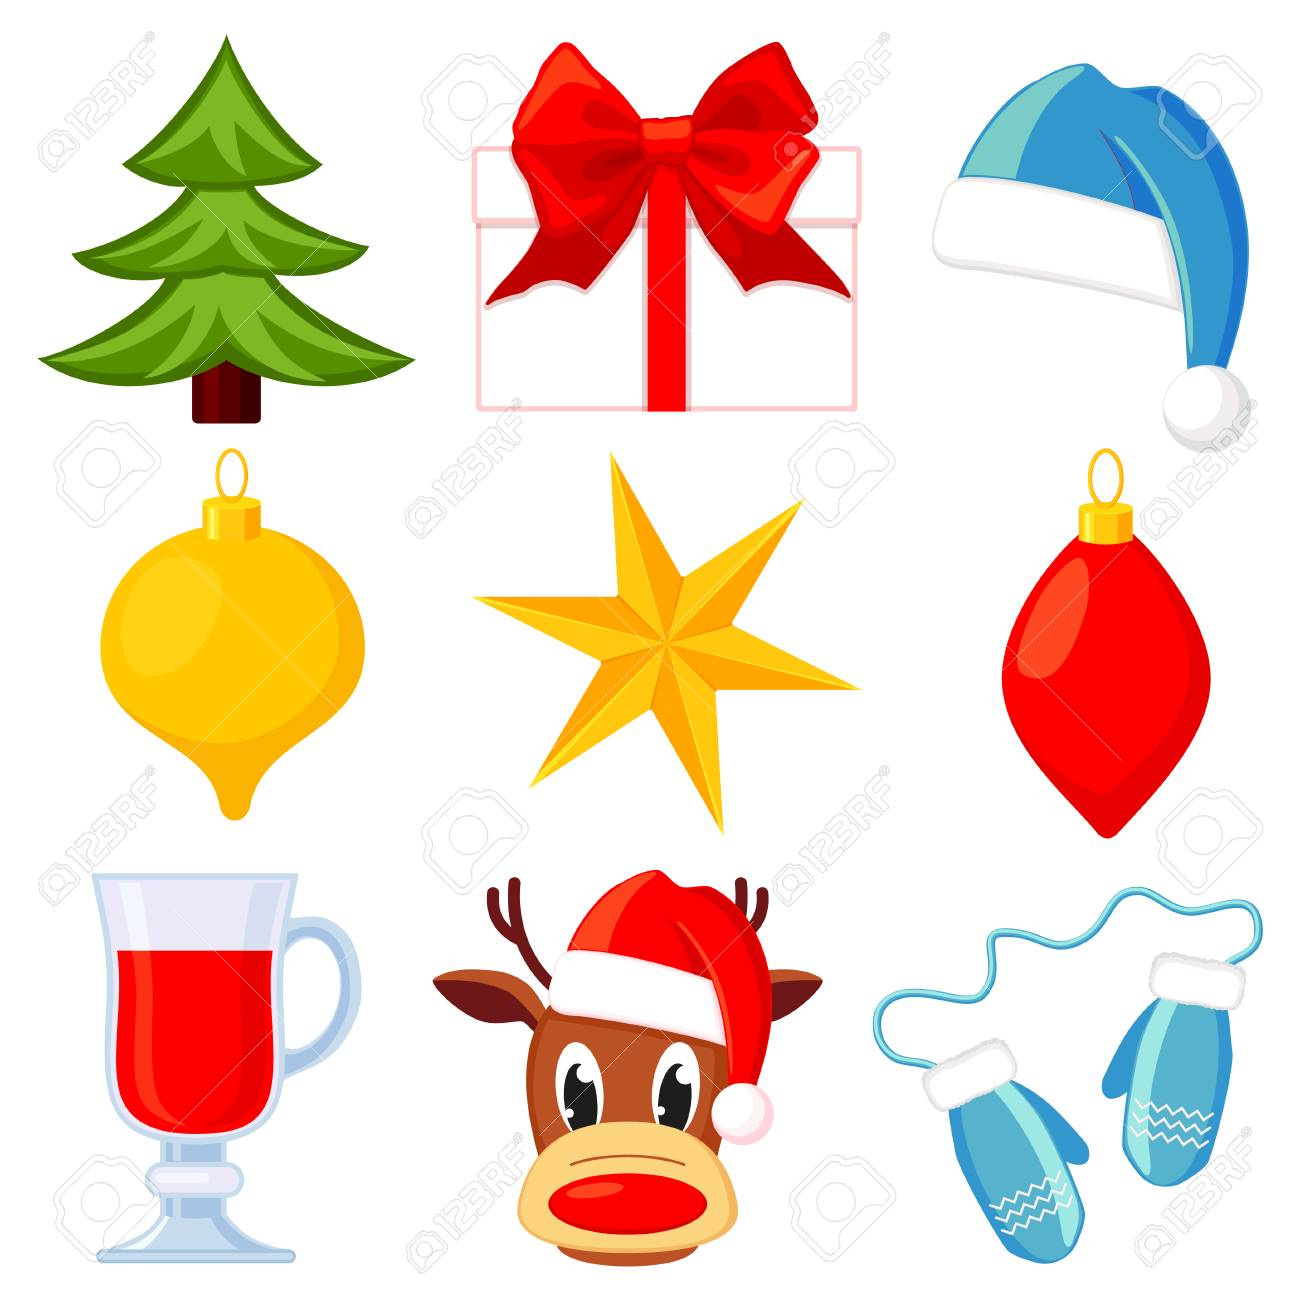 9 Colorful Cartoon Christmas Elements Set Holiday Traditional Royalty Free Cliparts Vectors And Stock Illustration Image 109836258